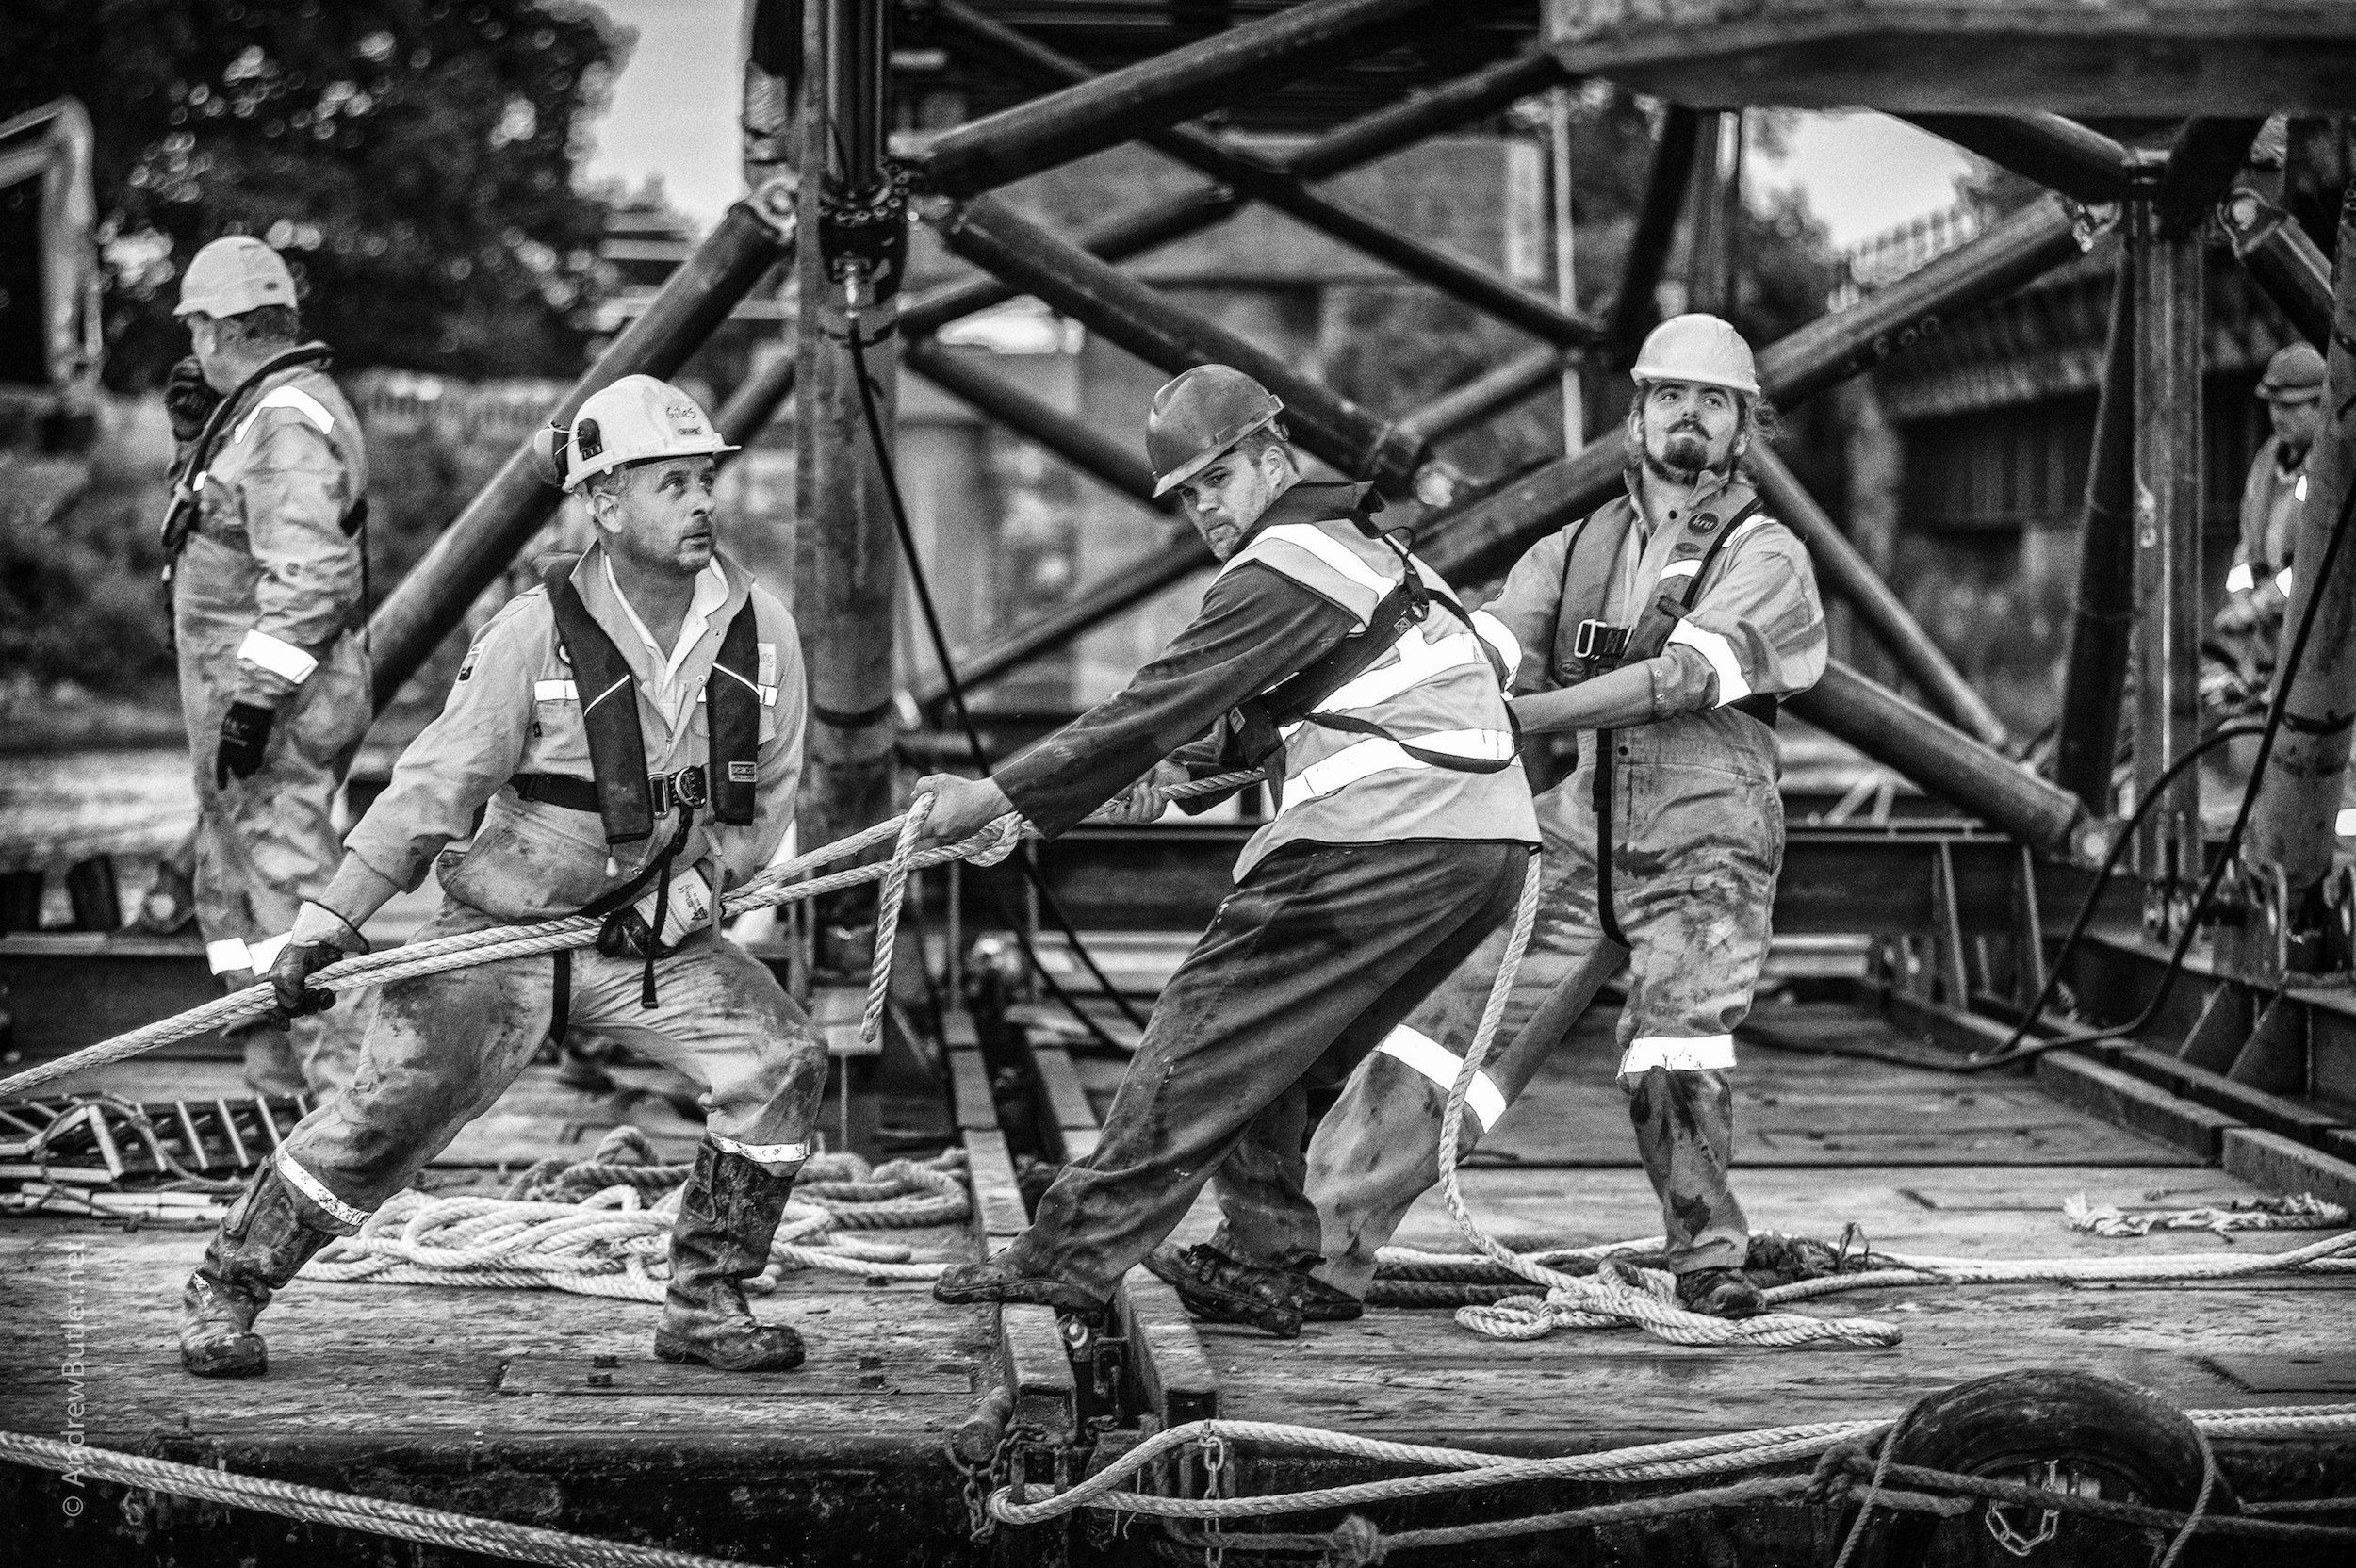 engineering photographs andrew construction industrial photographer butler documenting bridge commercial photograph clyst topsham cycle marine professional devon exeter near portrait